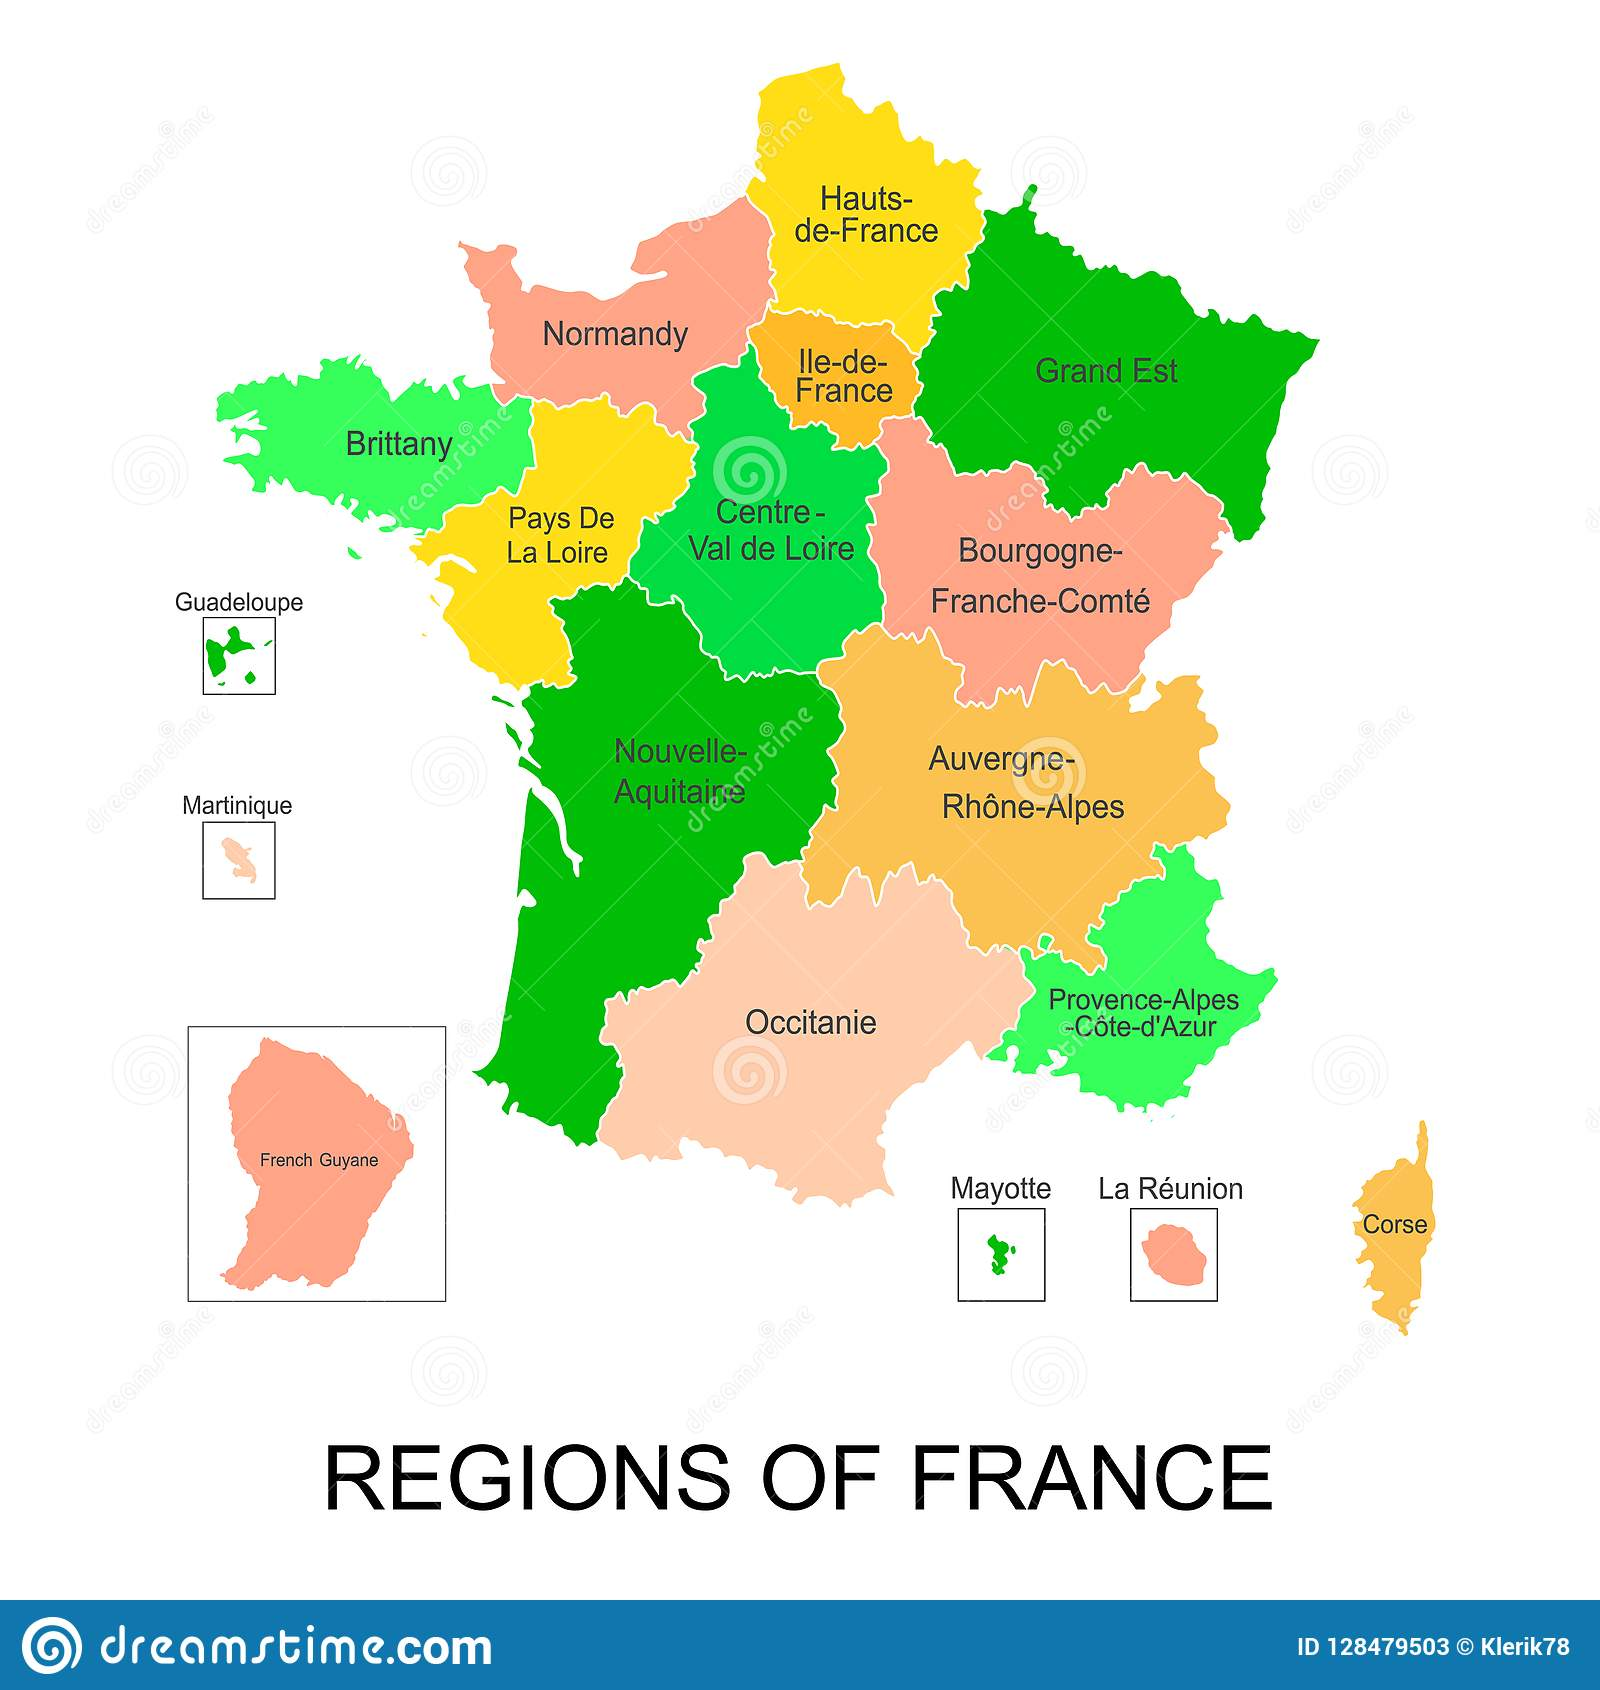 Regions De France Interactive Map Of Metropolitans French Regions With 5 Overseas